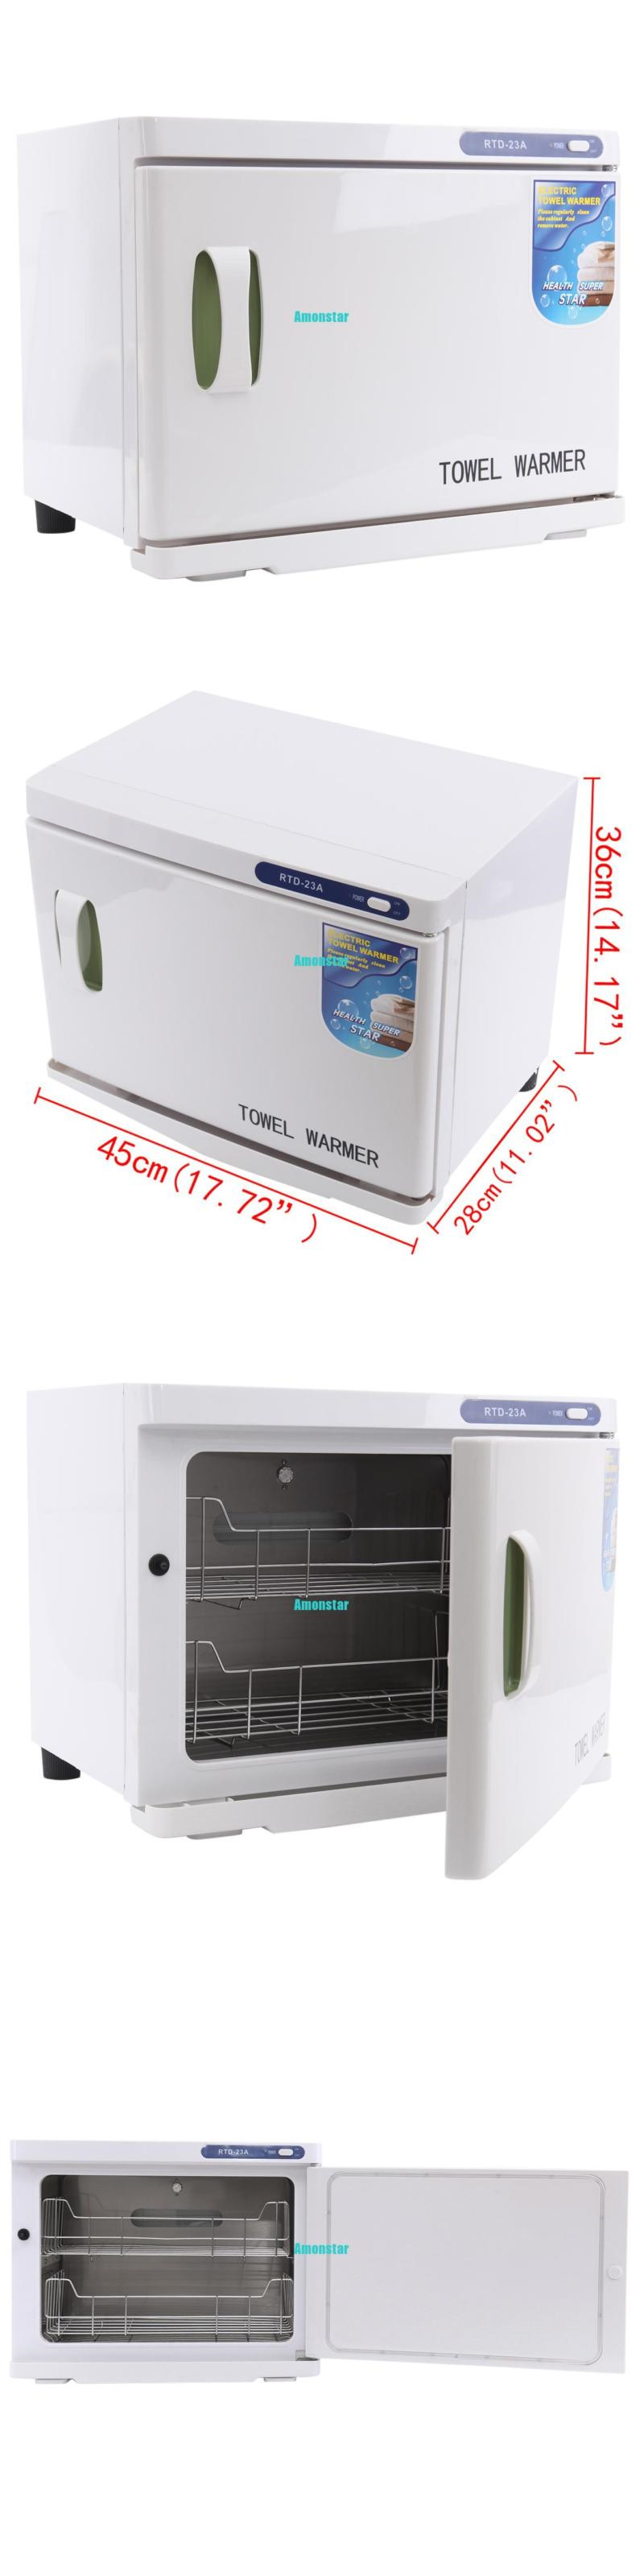 Sterilizers and Towel Warmers 23L 2 In1 Hot Towel Warmer Uv